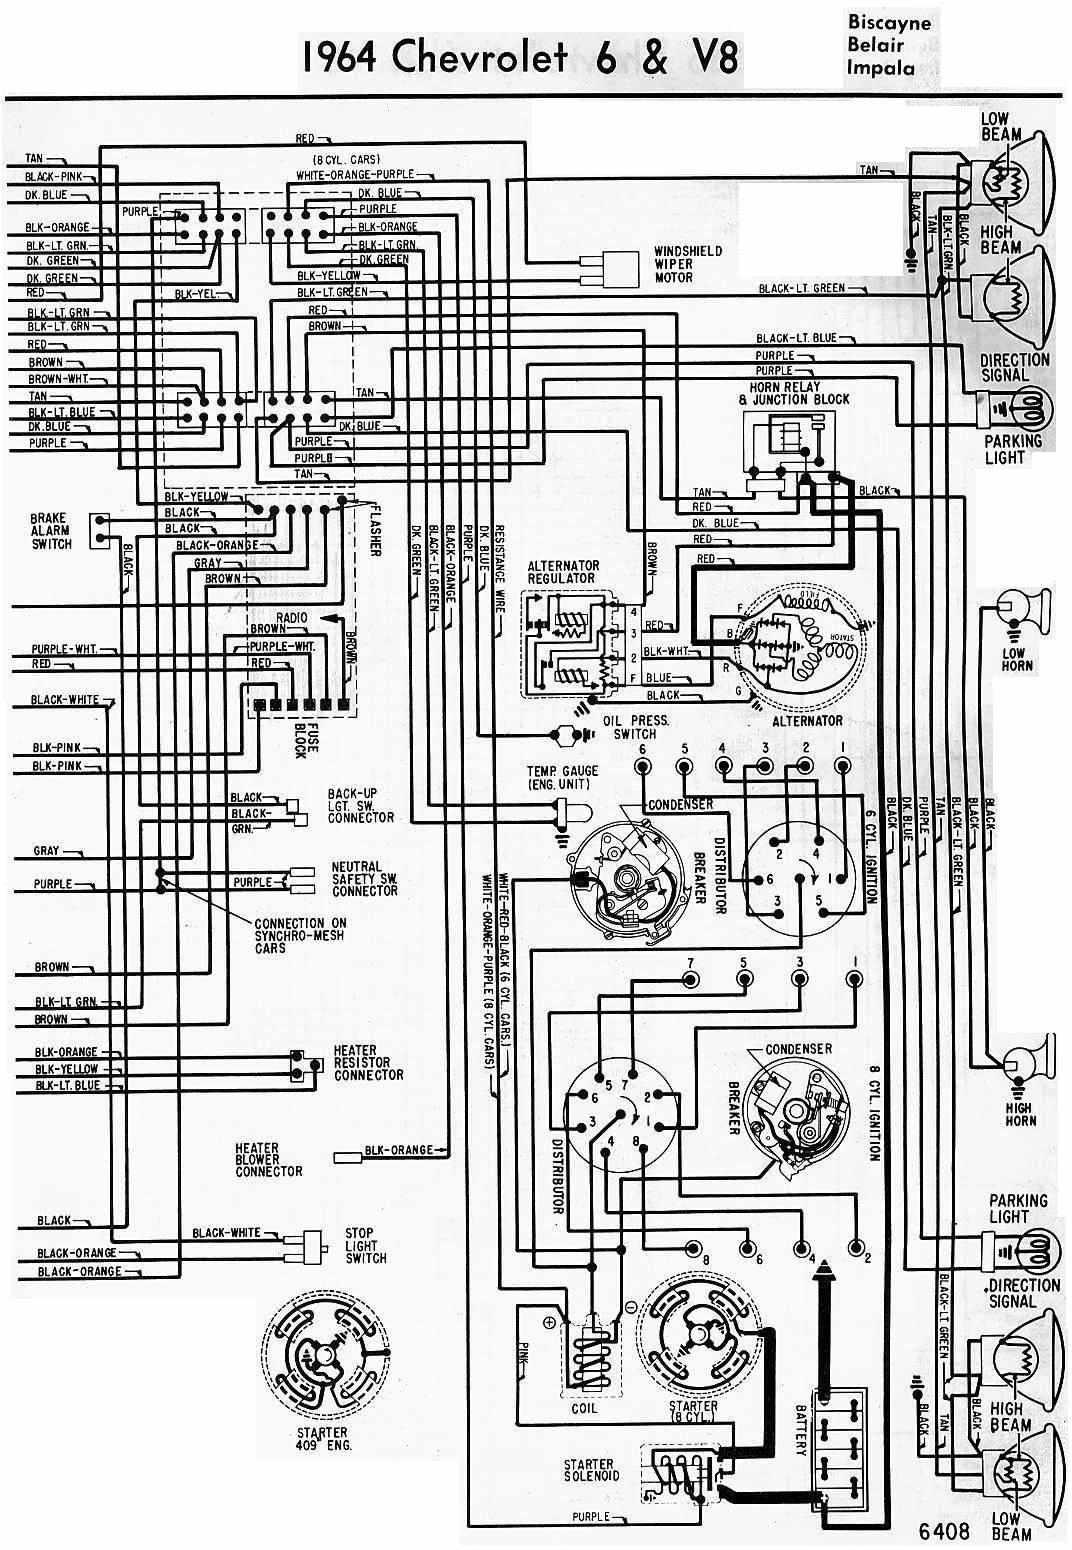 Electrical+Wiring+Diagram+Of+1964+Chevrolet+6+And+V8 1964 bel air wire diagram colors incorrect chevytalk free 1964 impala wiring diagram at webbmarketing.co